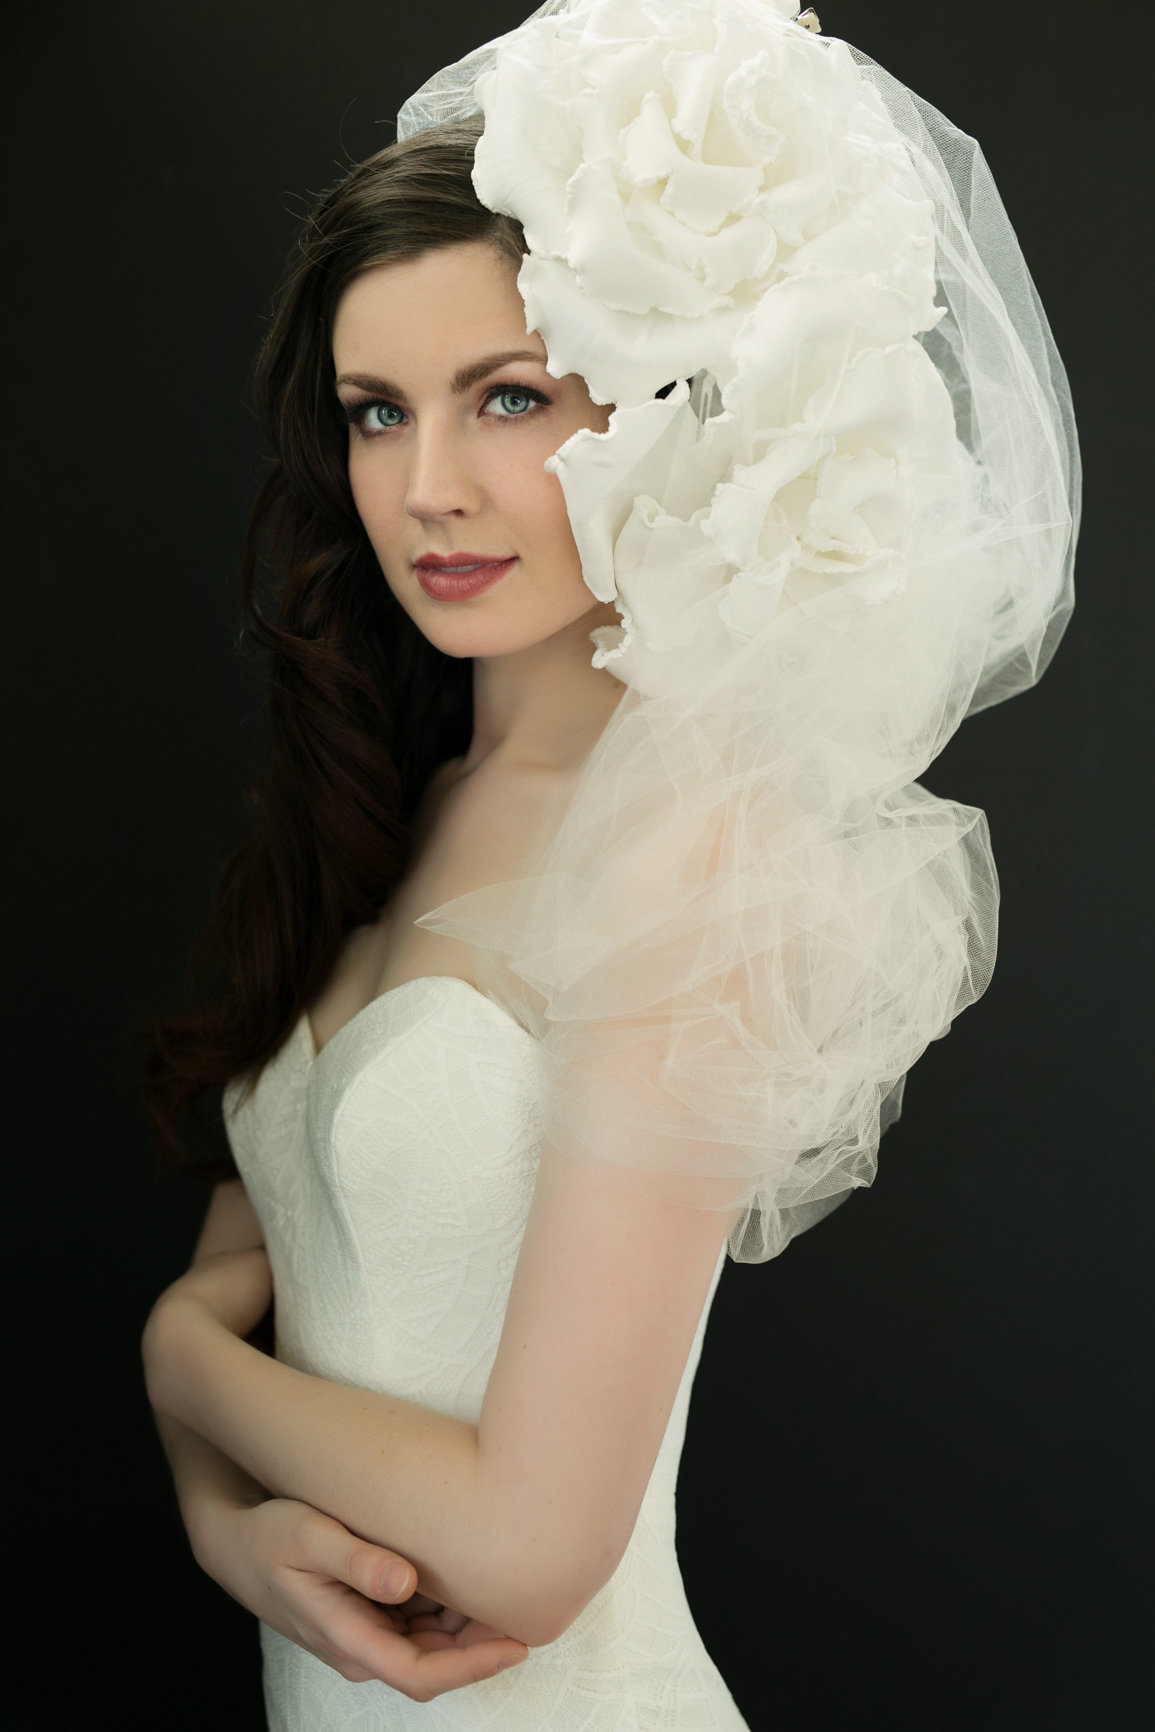 nikki-closser-photography-bridal-14